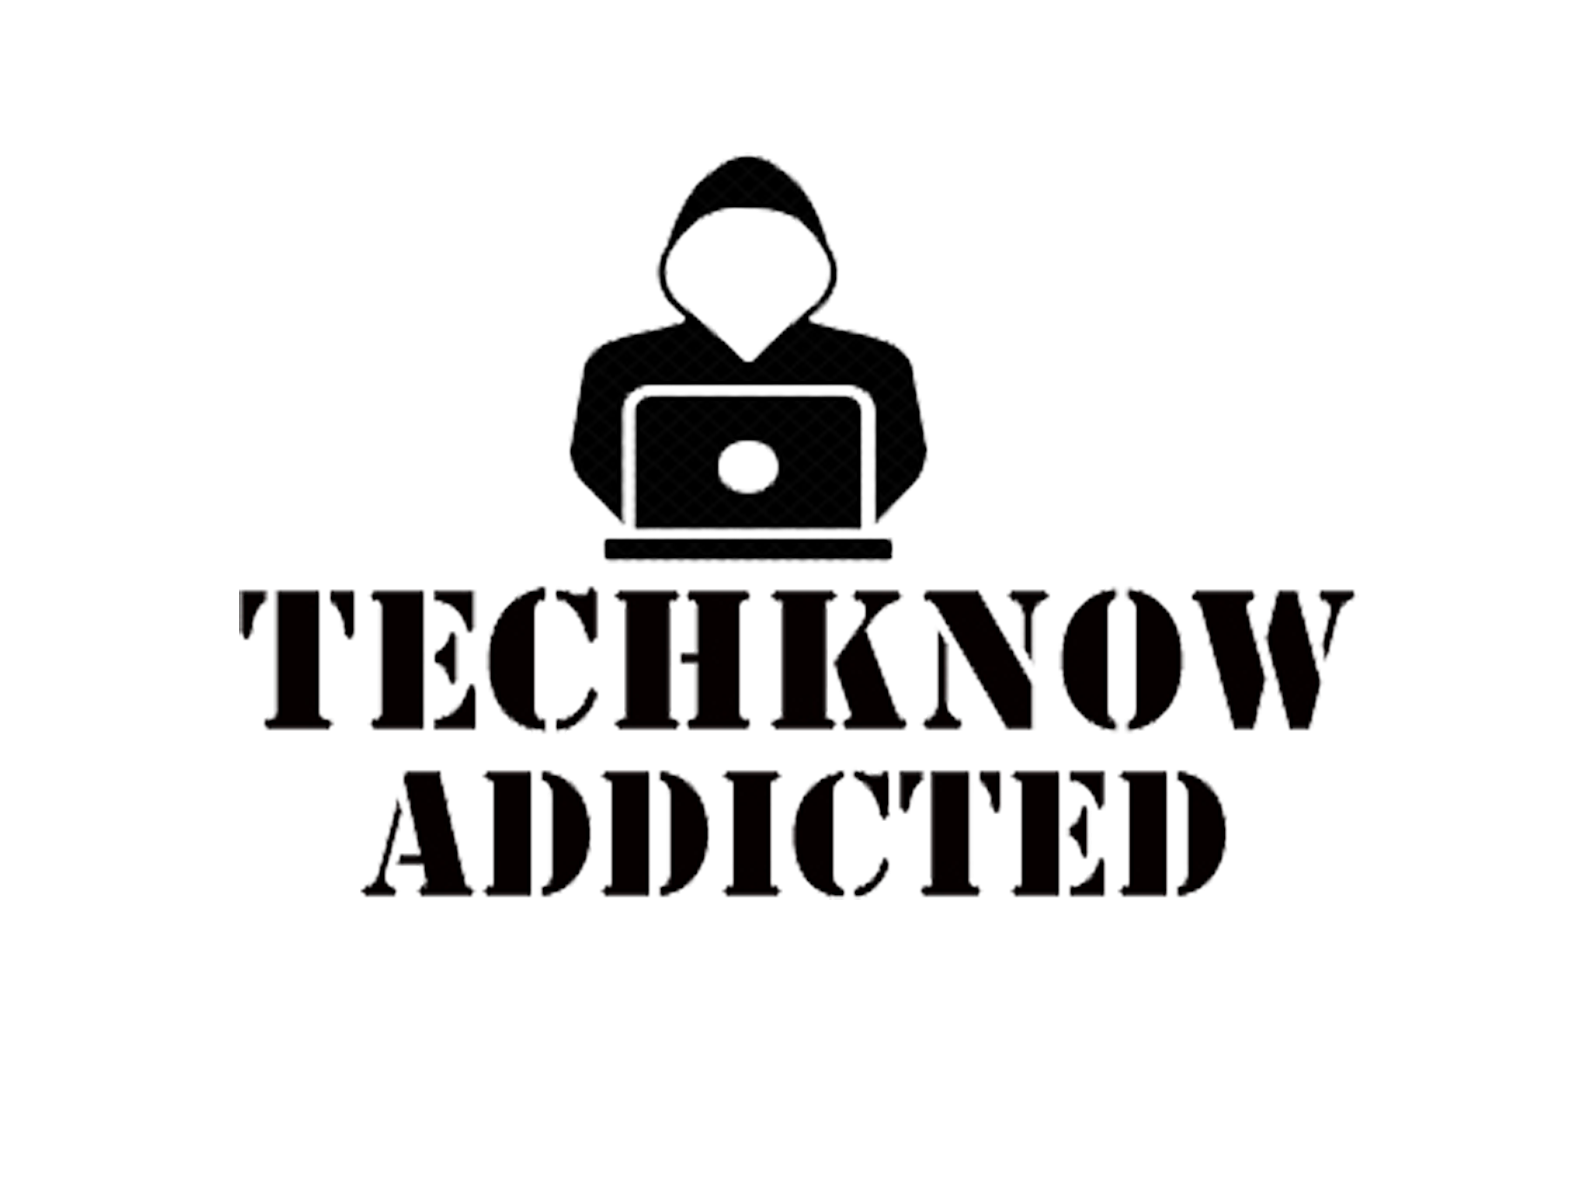 Techknow Addicted